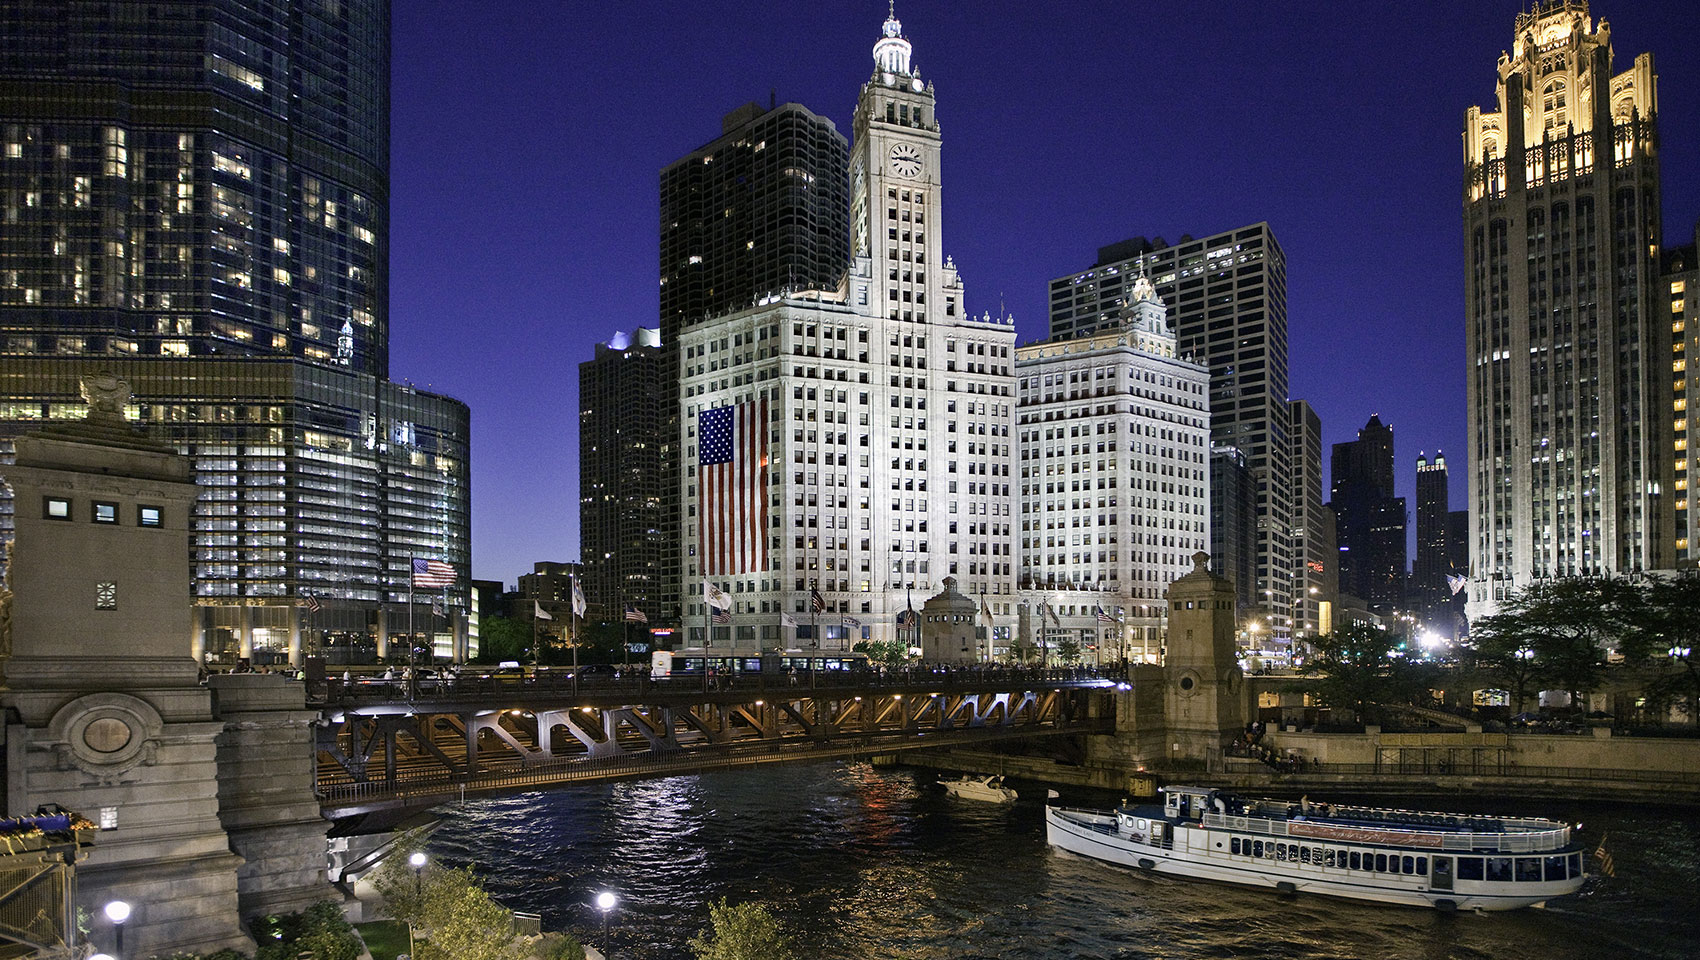 Wrigley Building, magnificent mile, river boat, American flag